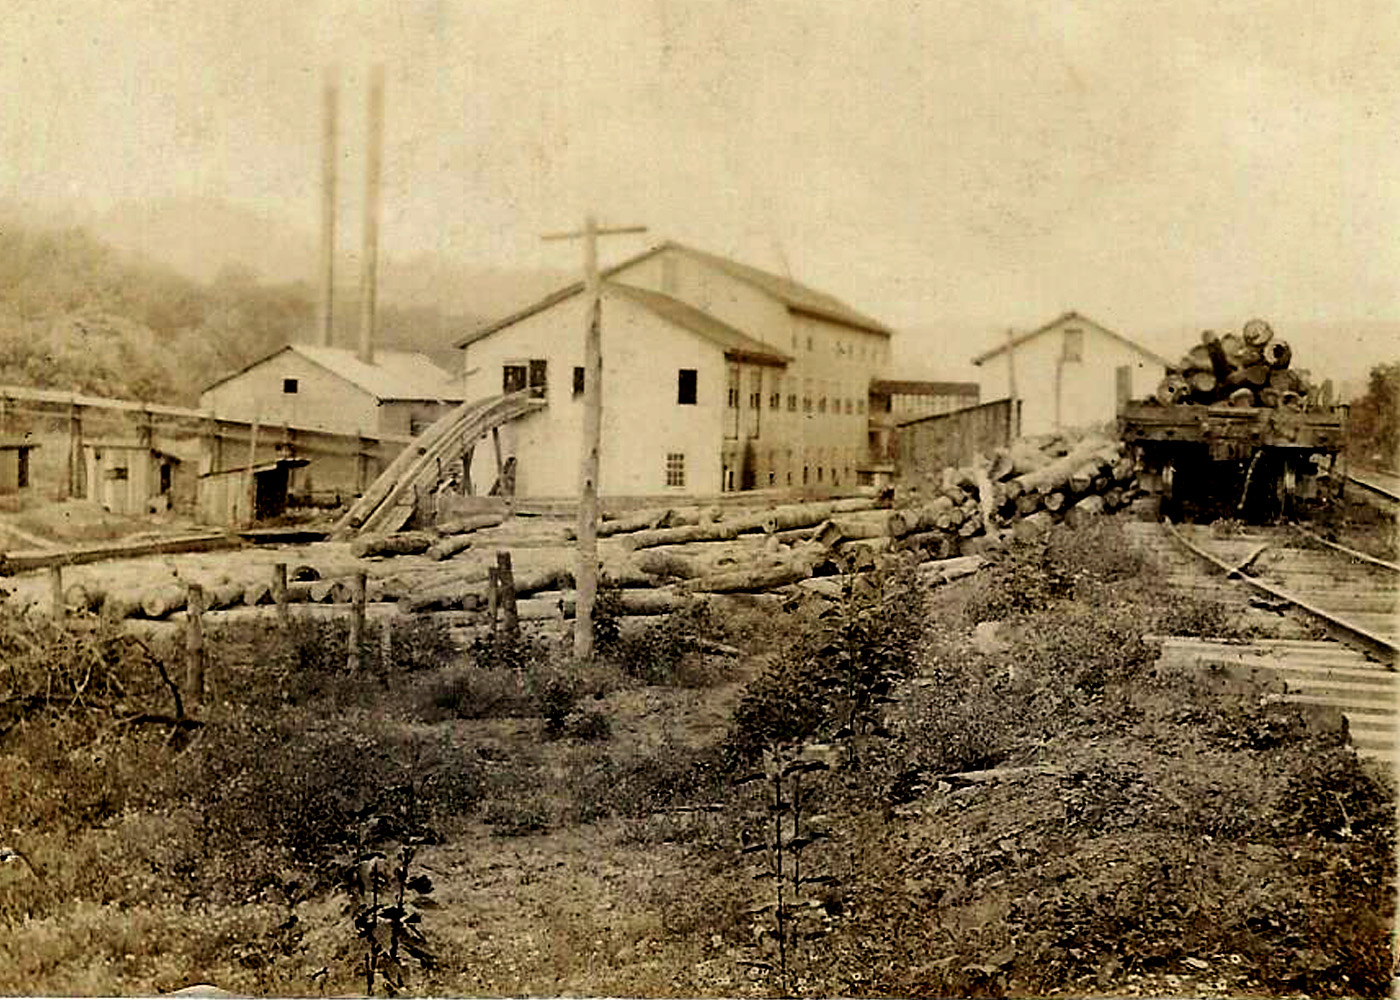 Close Pin Factory at Norma, Scott, TN, in early 1900's